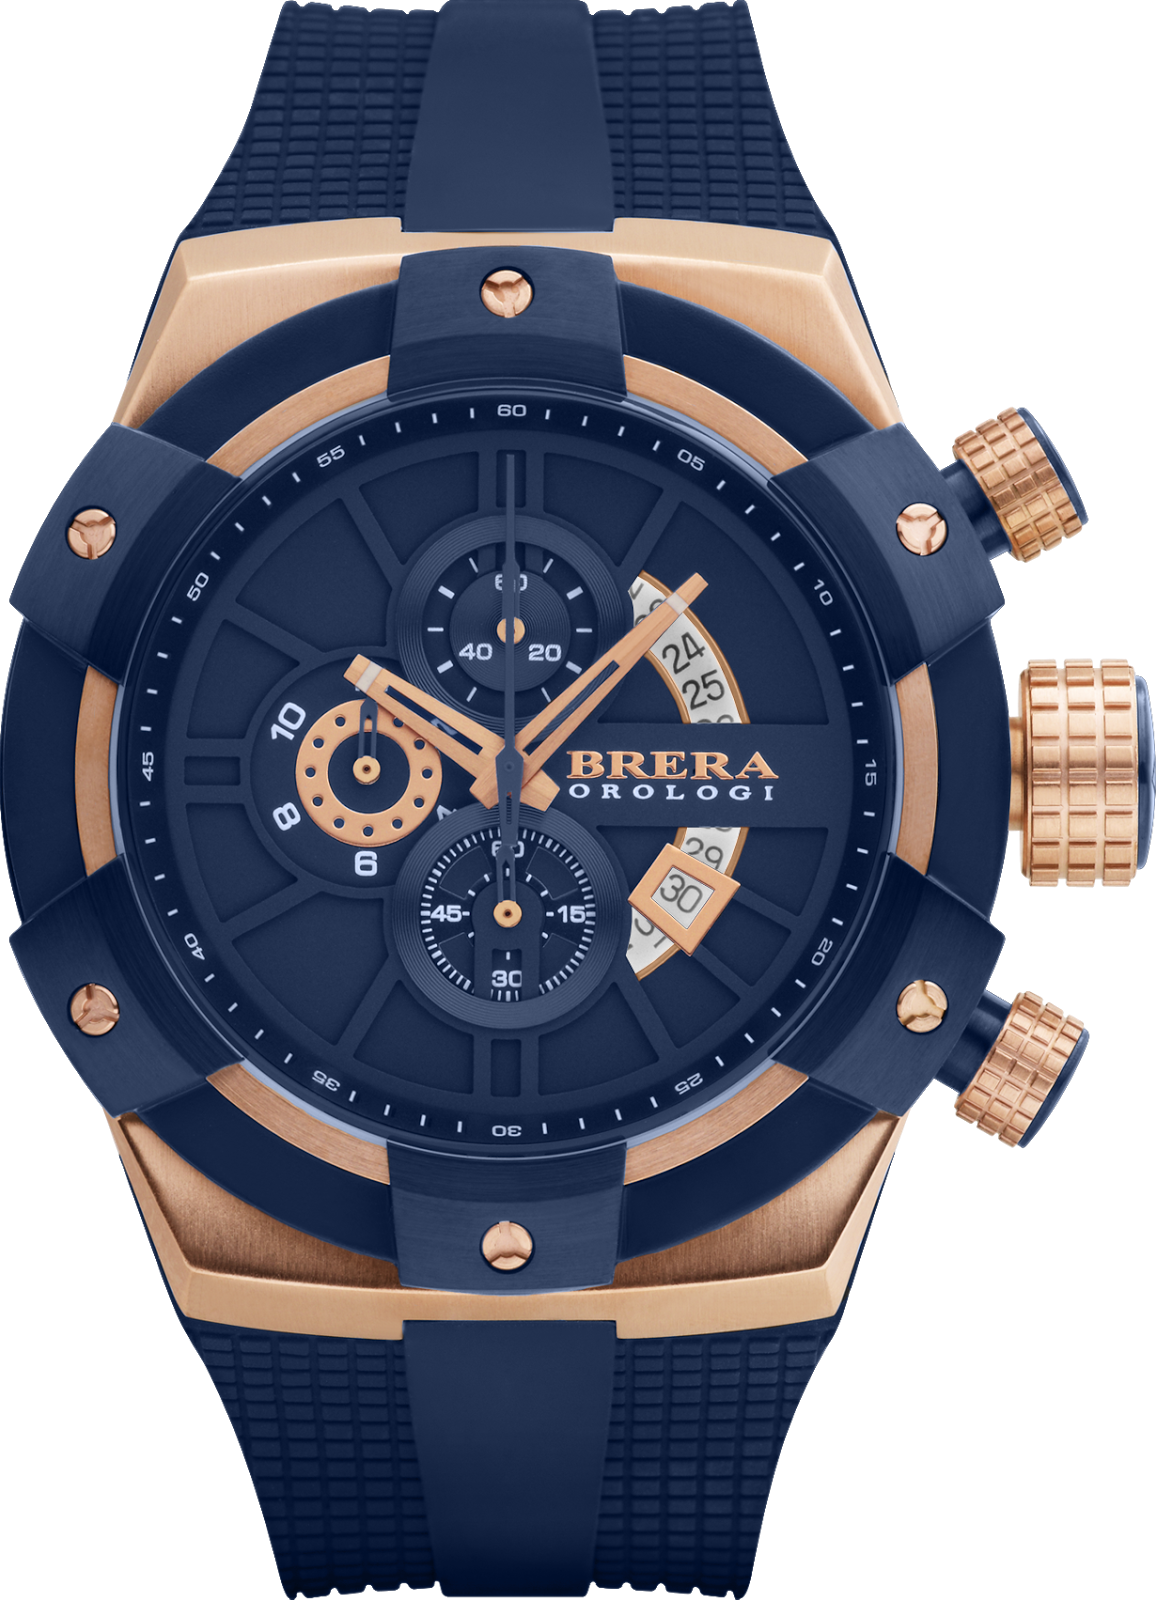 10c09353c16 e cristallo zaffiro con rivestimento antiriflesso. Stainless steel with  wetting rose gold